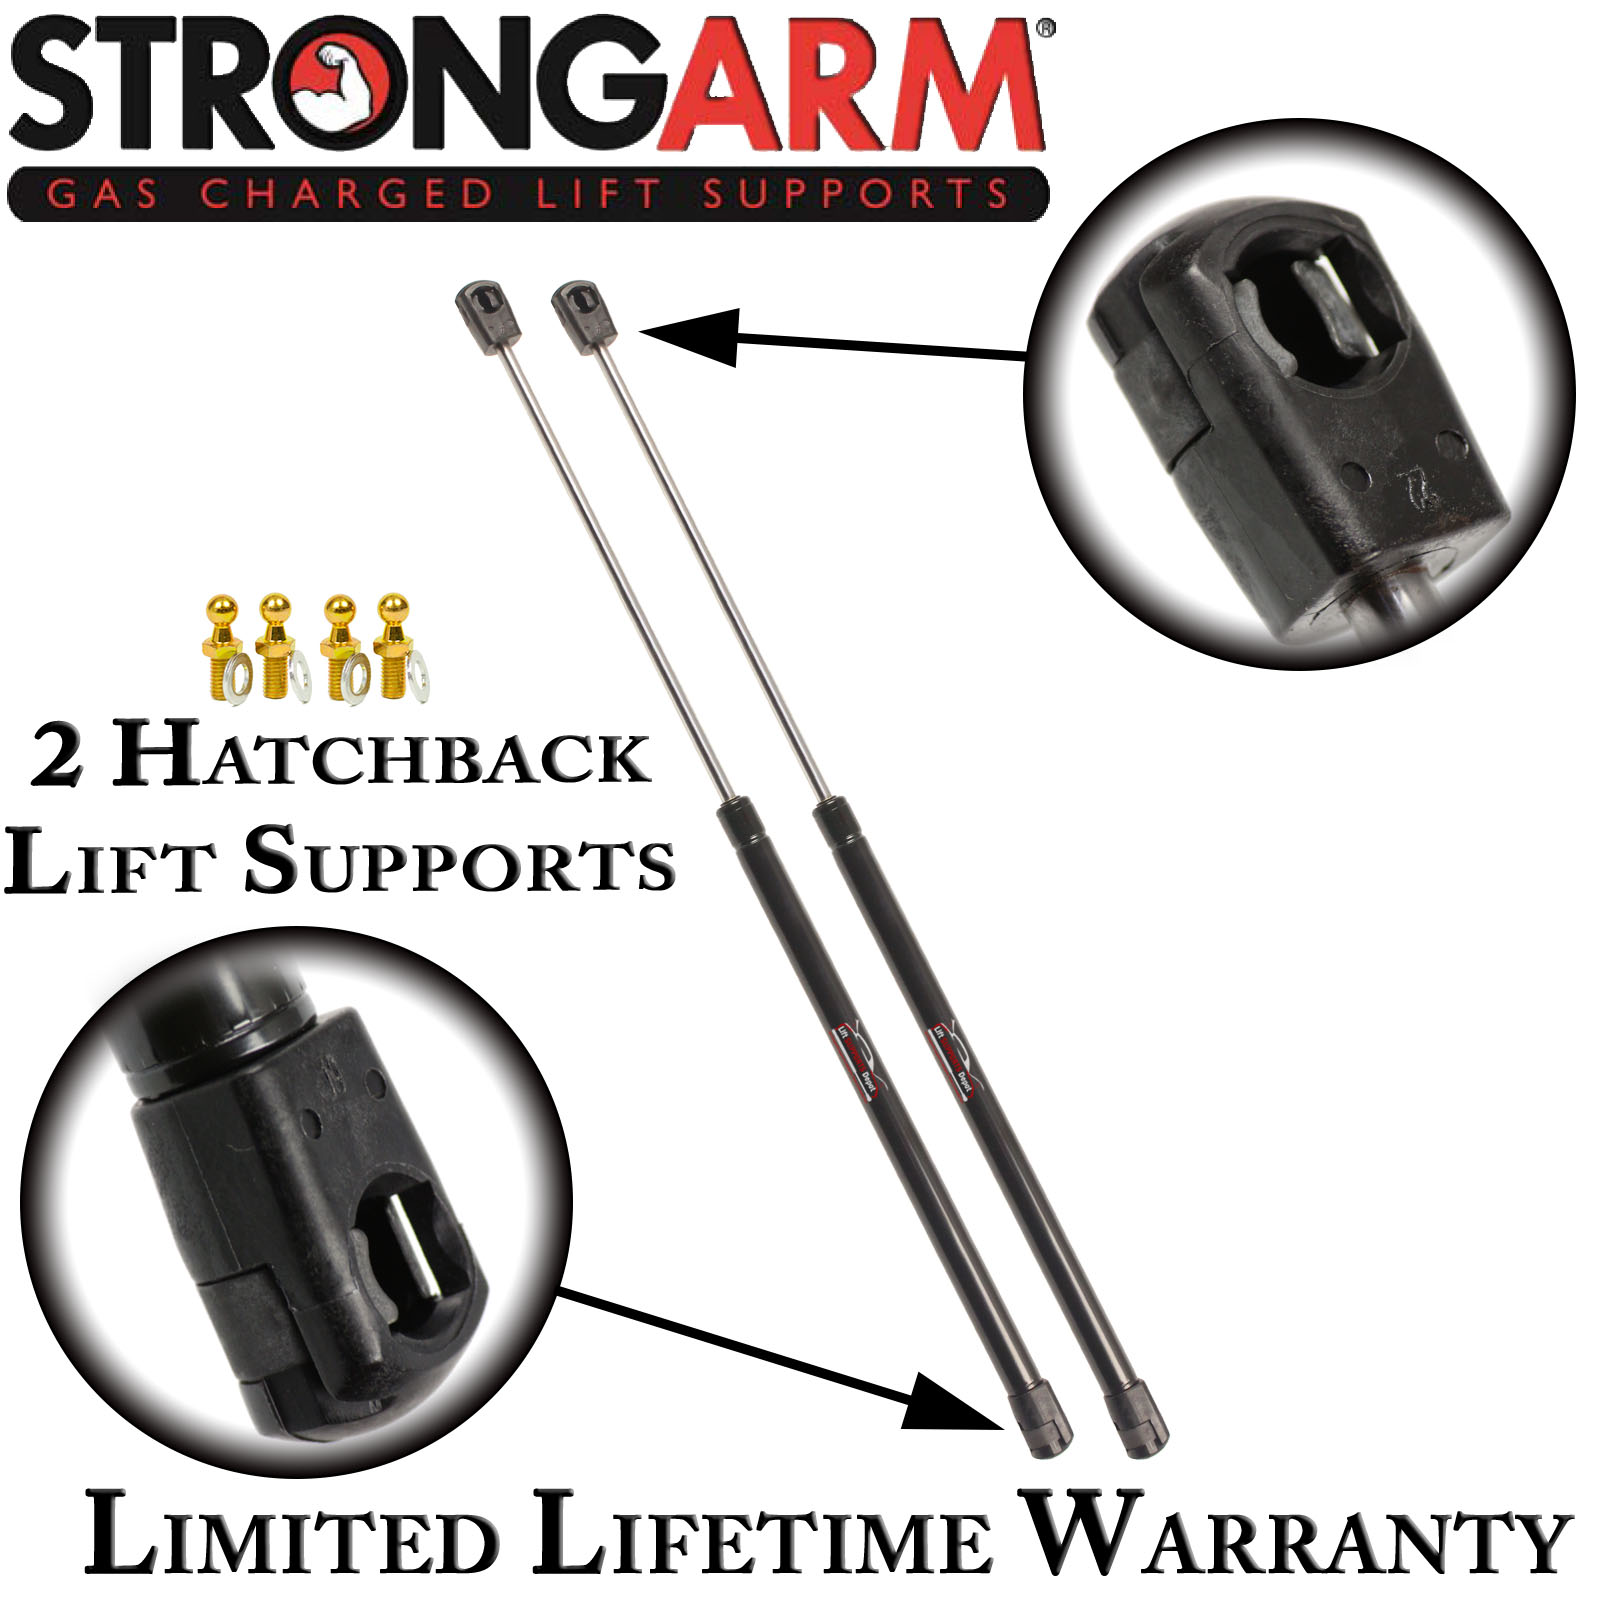 2 StrongArm 4639 Fits Mazda MX-6 Hatchback Lift Supports With Spoiler Qty